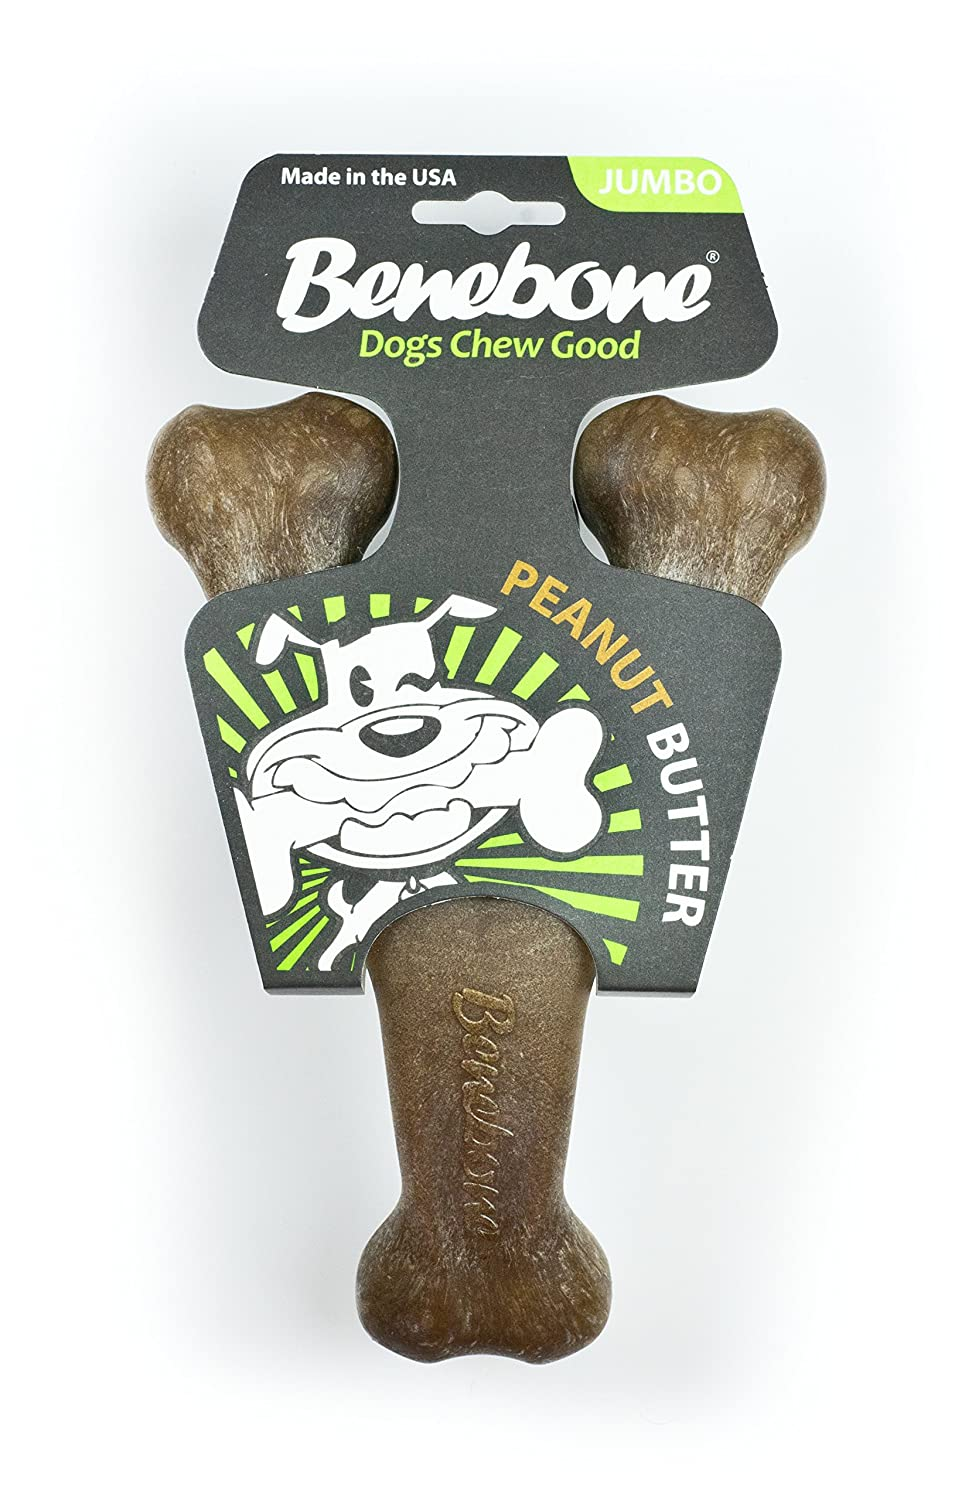 Benebone Peanut Flavored JUMBO Size Wishbone Chew Toy, Dark Brown